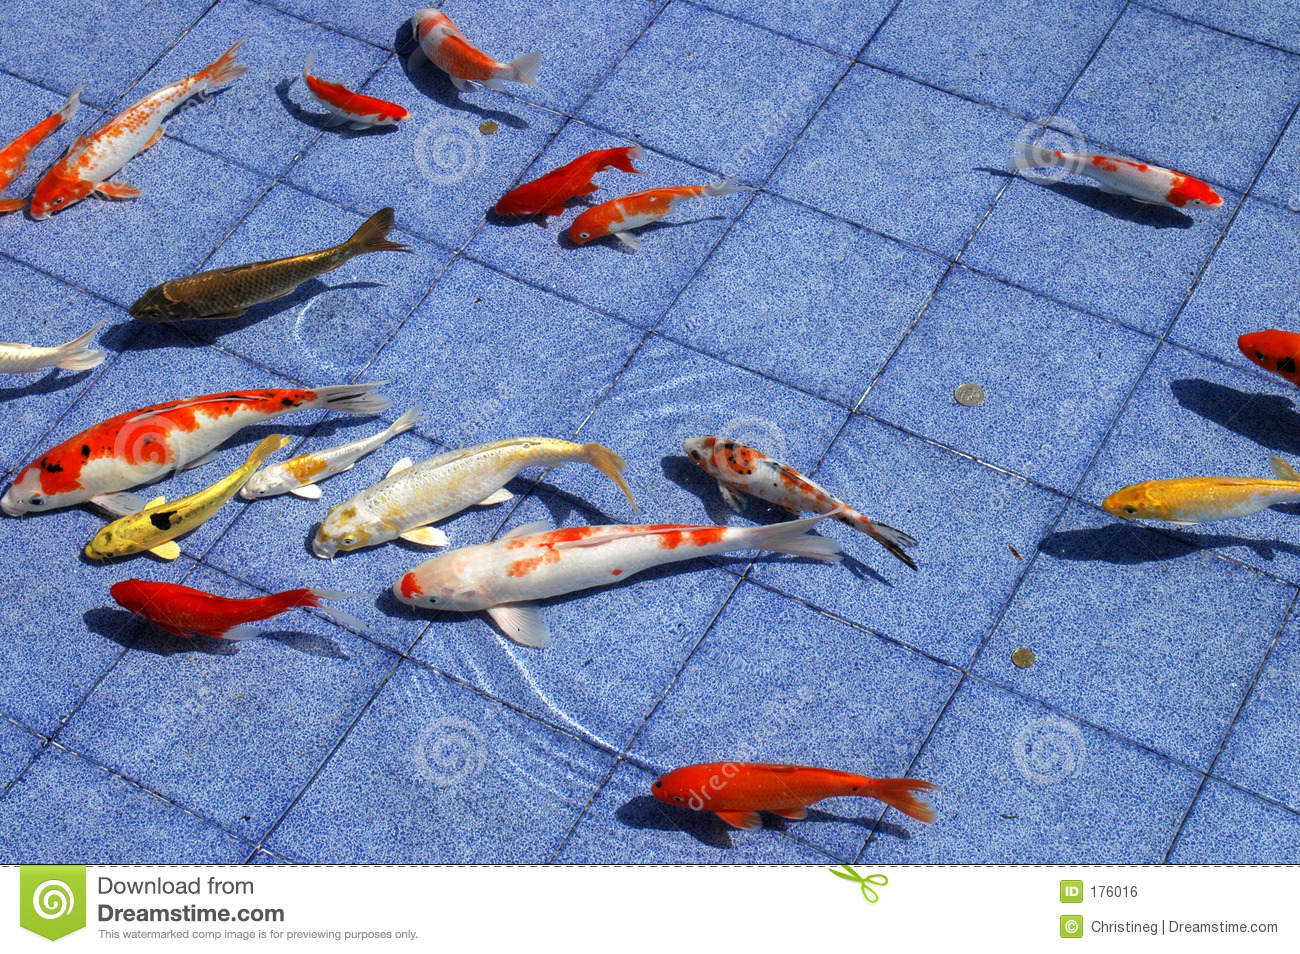 Koi fish in a blue pool royalty free stock image image for Koi carp pool design